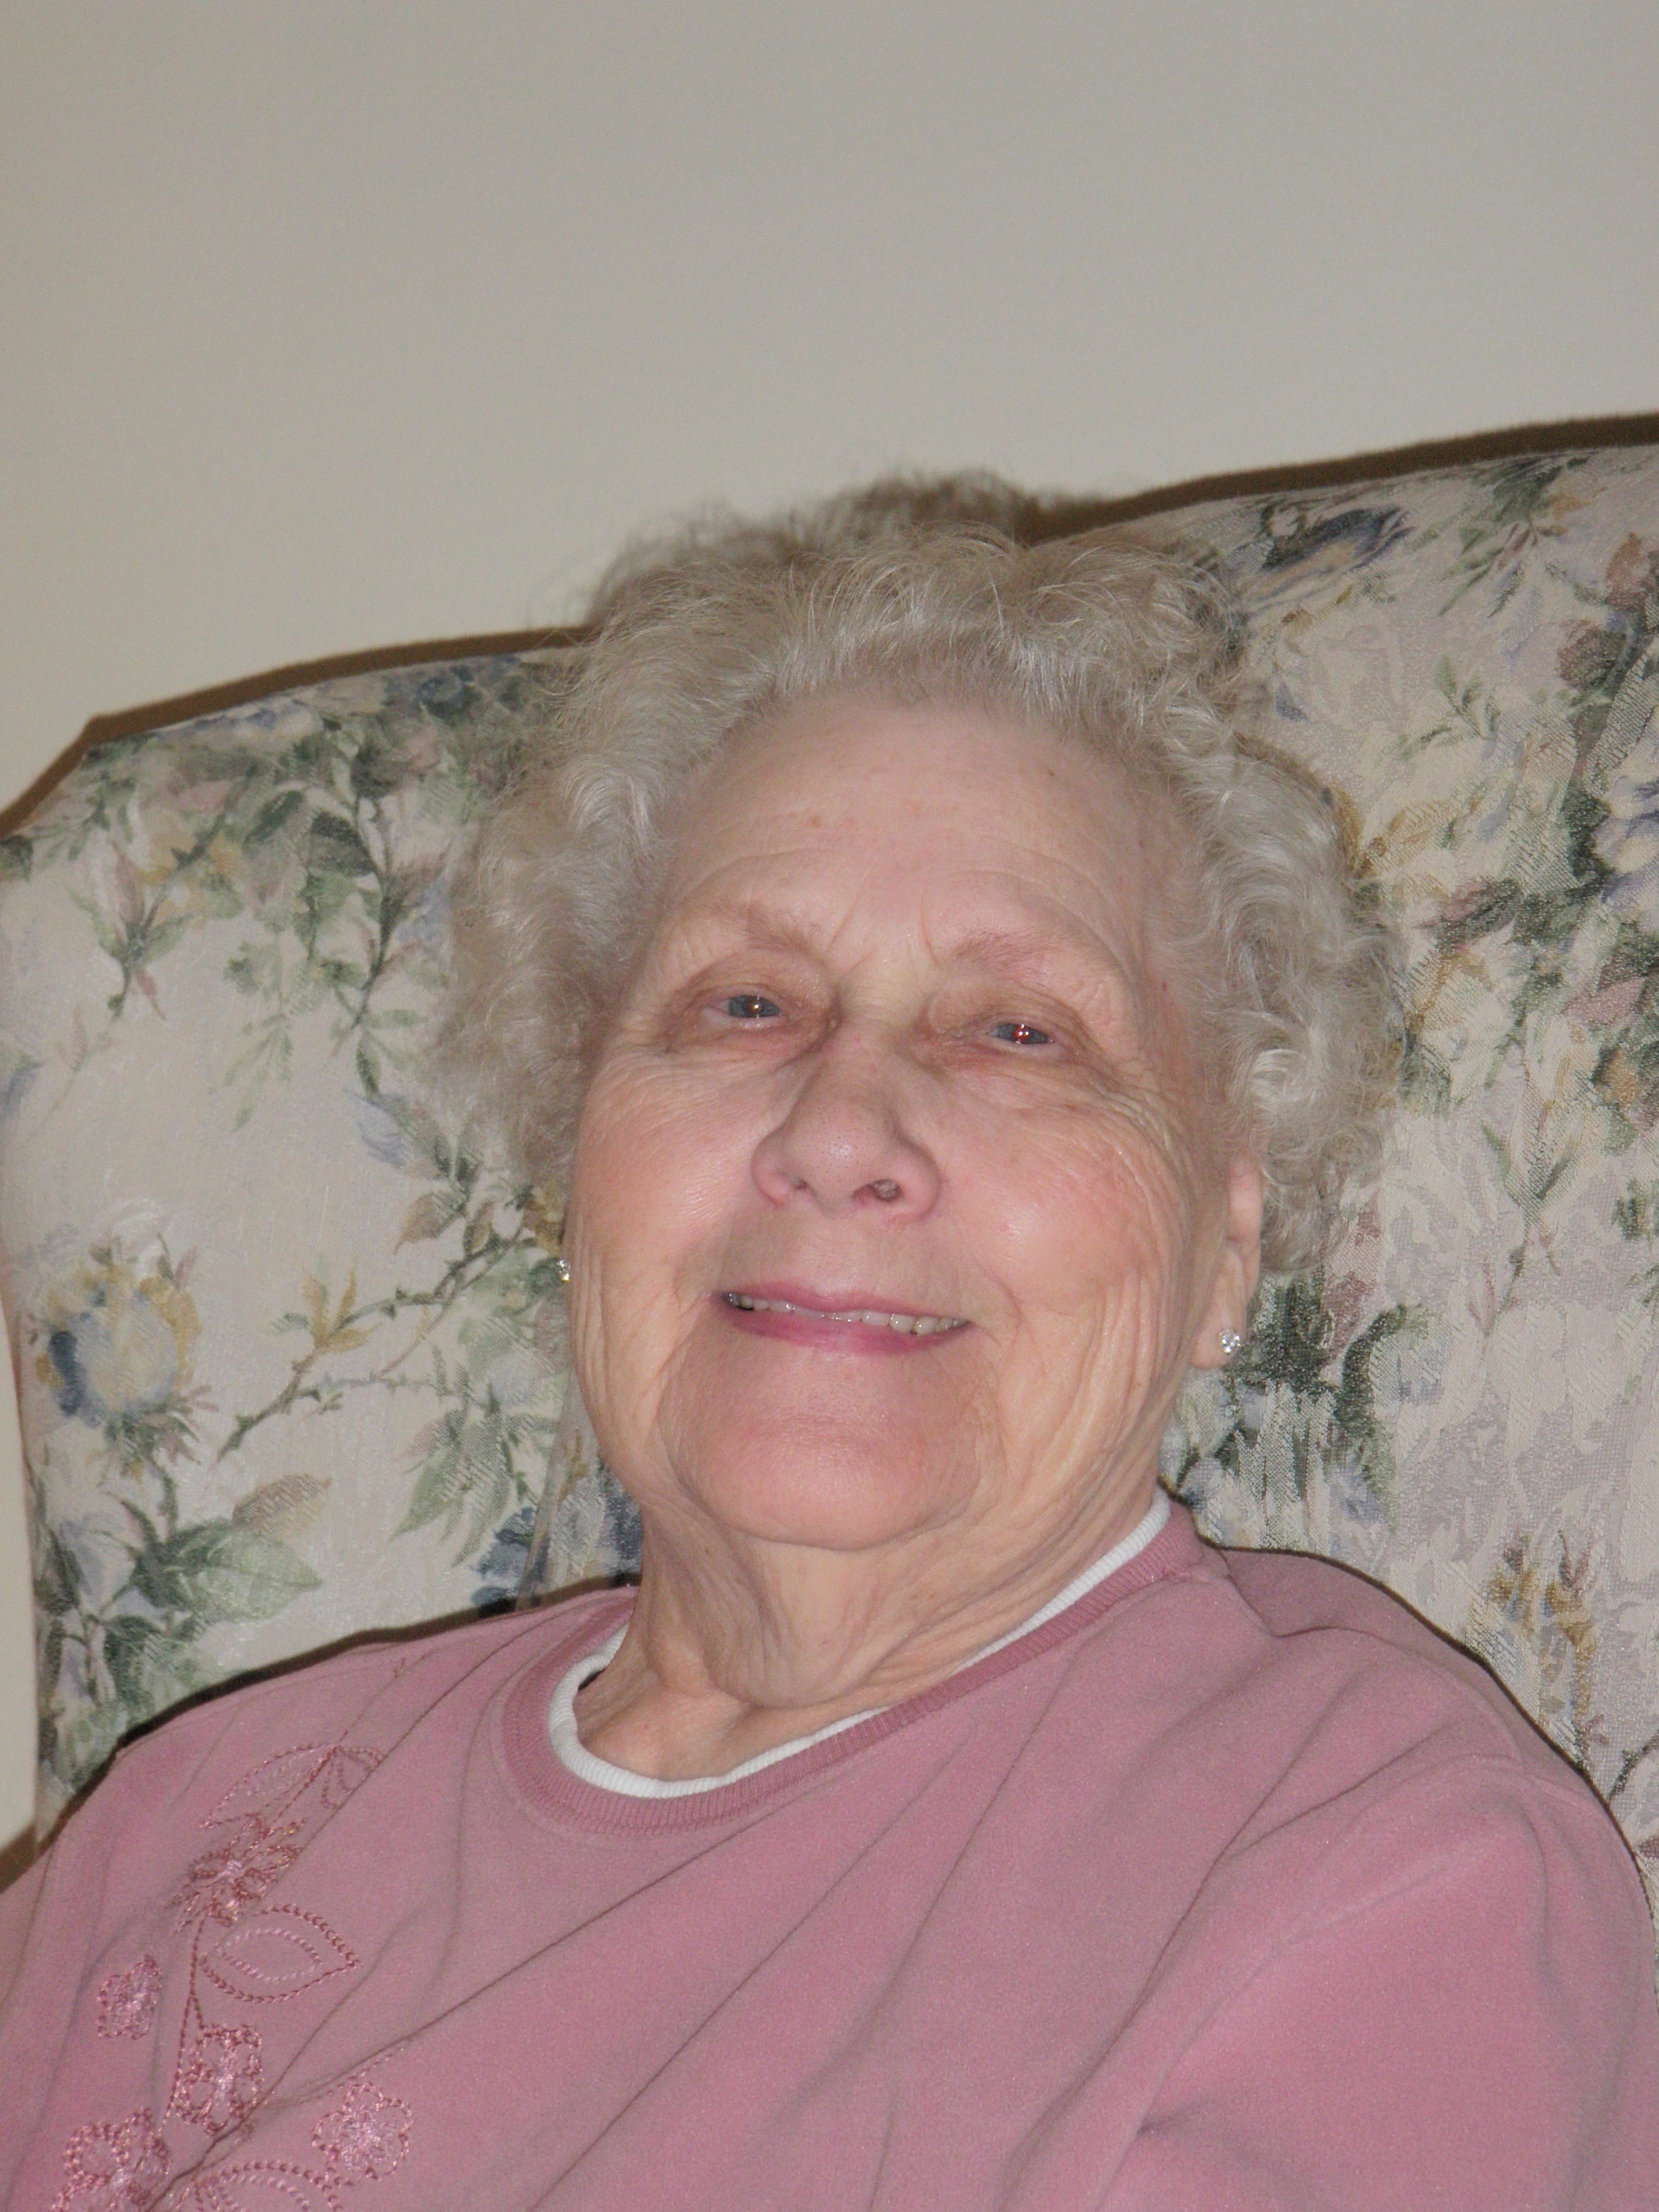 My Mom's Passing Last Night - Lawyers With Depression